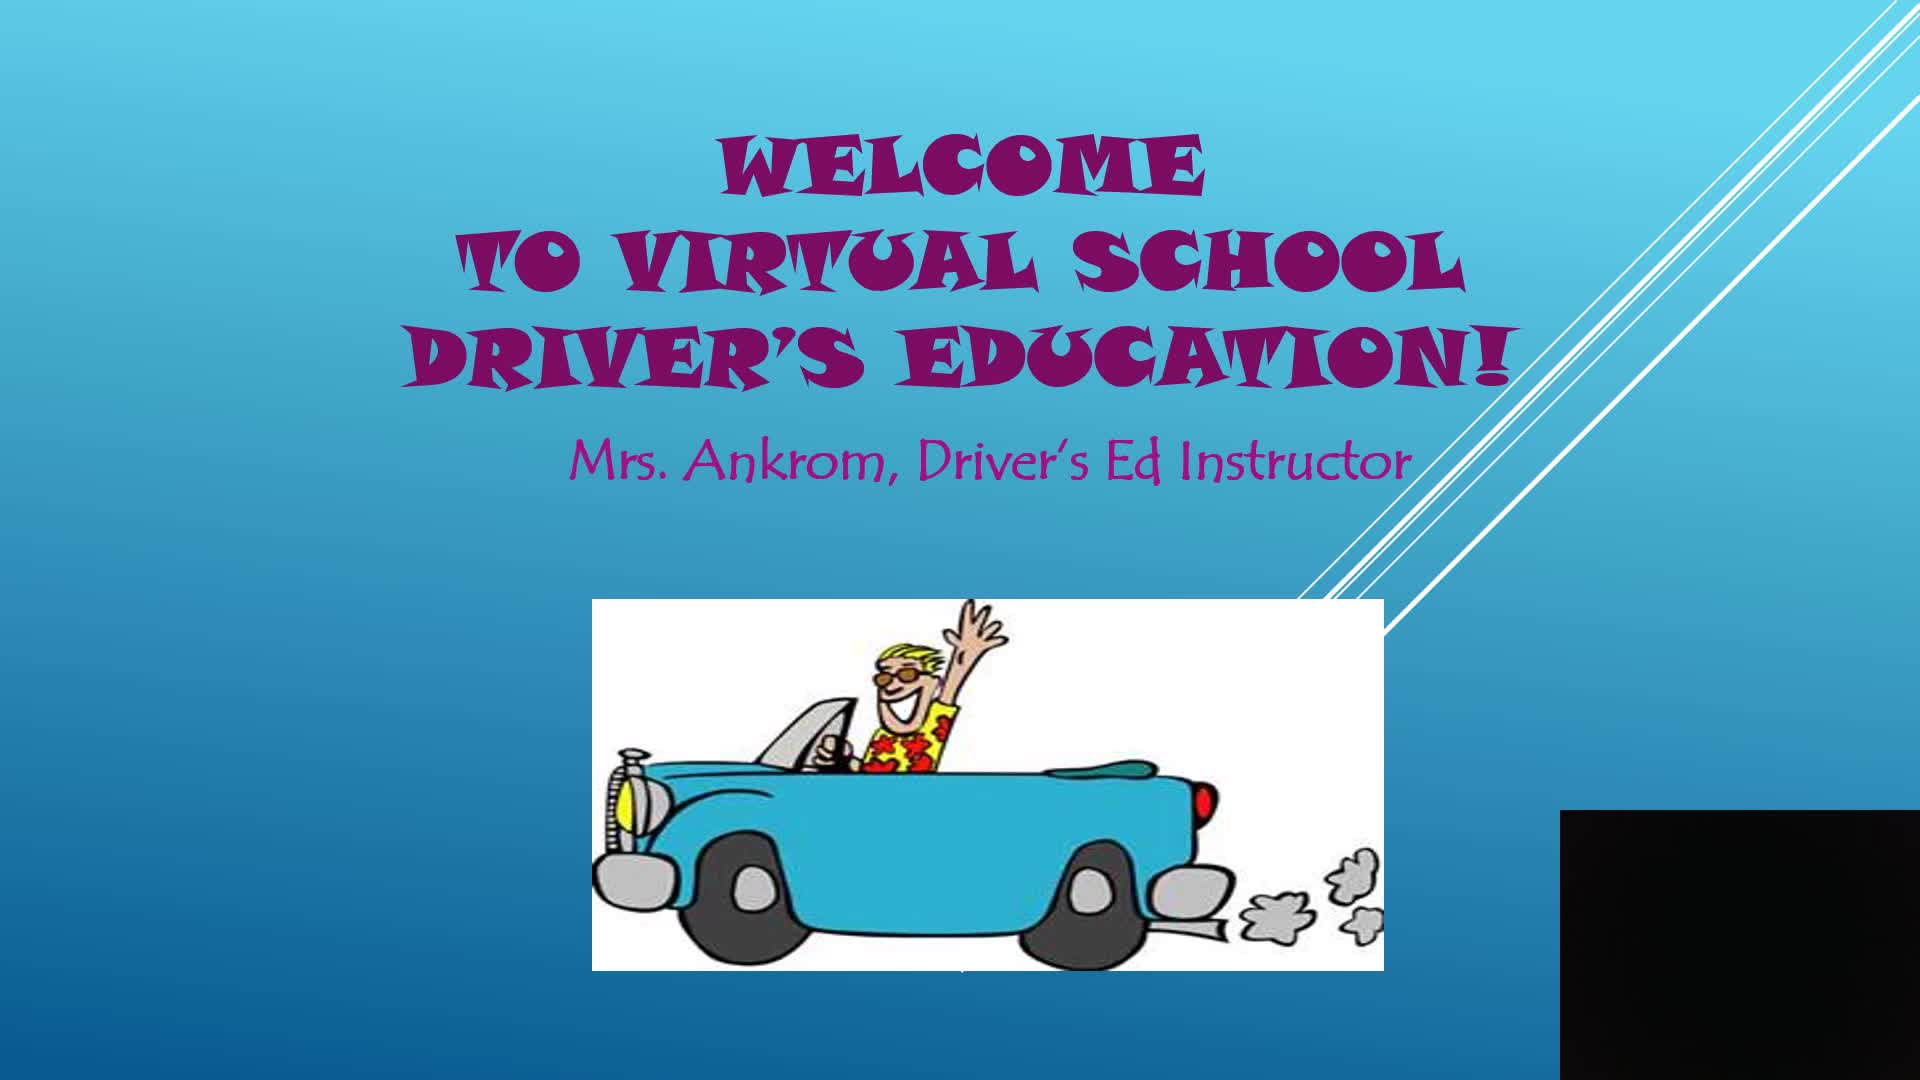 Dr. Ed Welcome Video